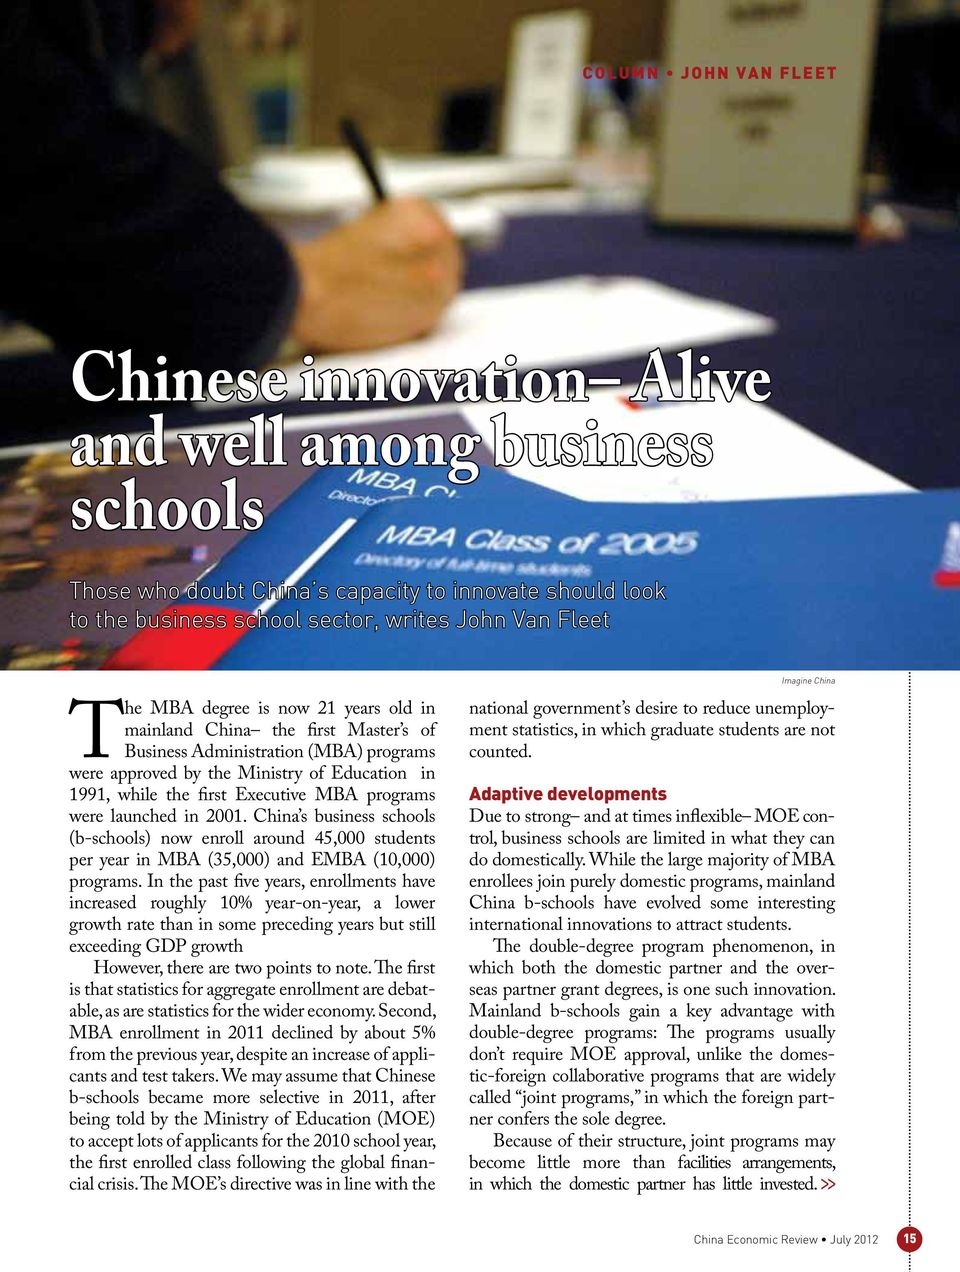 were launched in 2001. China s business schools (b-schools) now enroll around 45,000 students per year in MBA (35,000) and EMBA (10,000) programs.